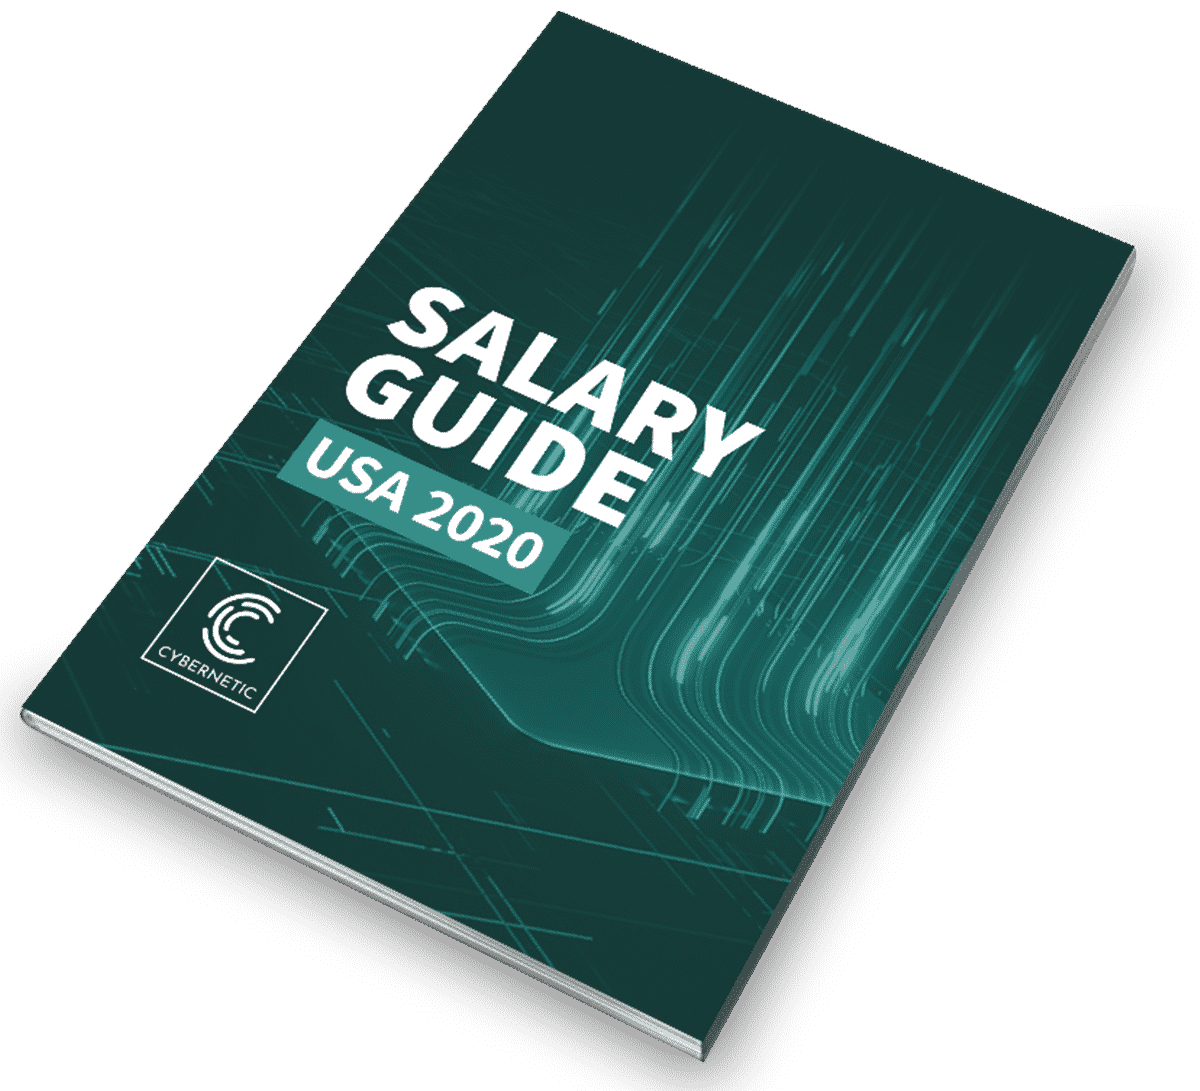 Salary-Guide-New